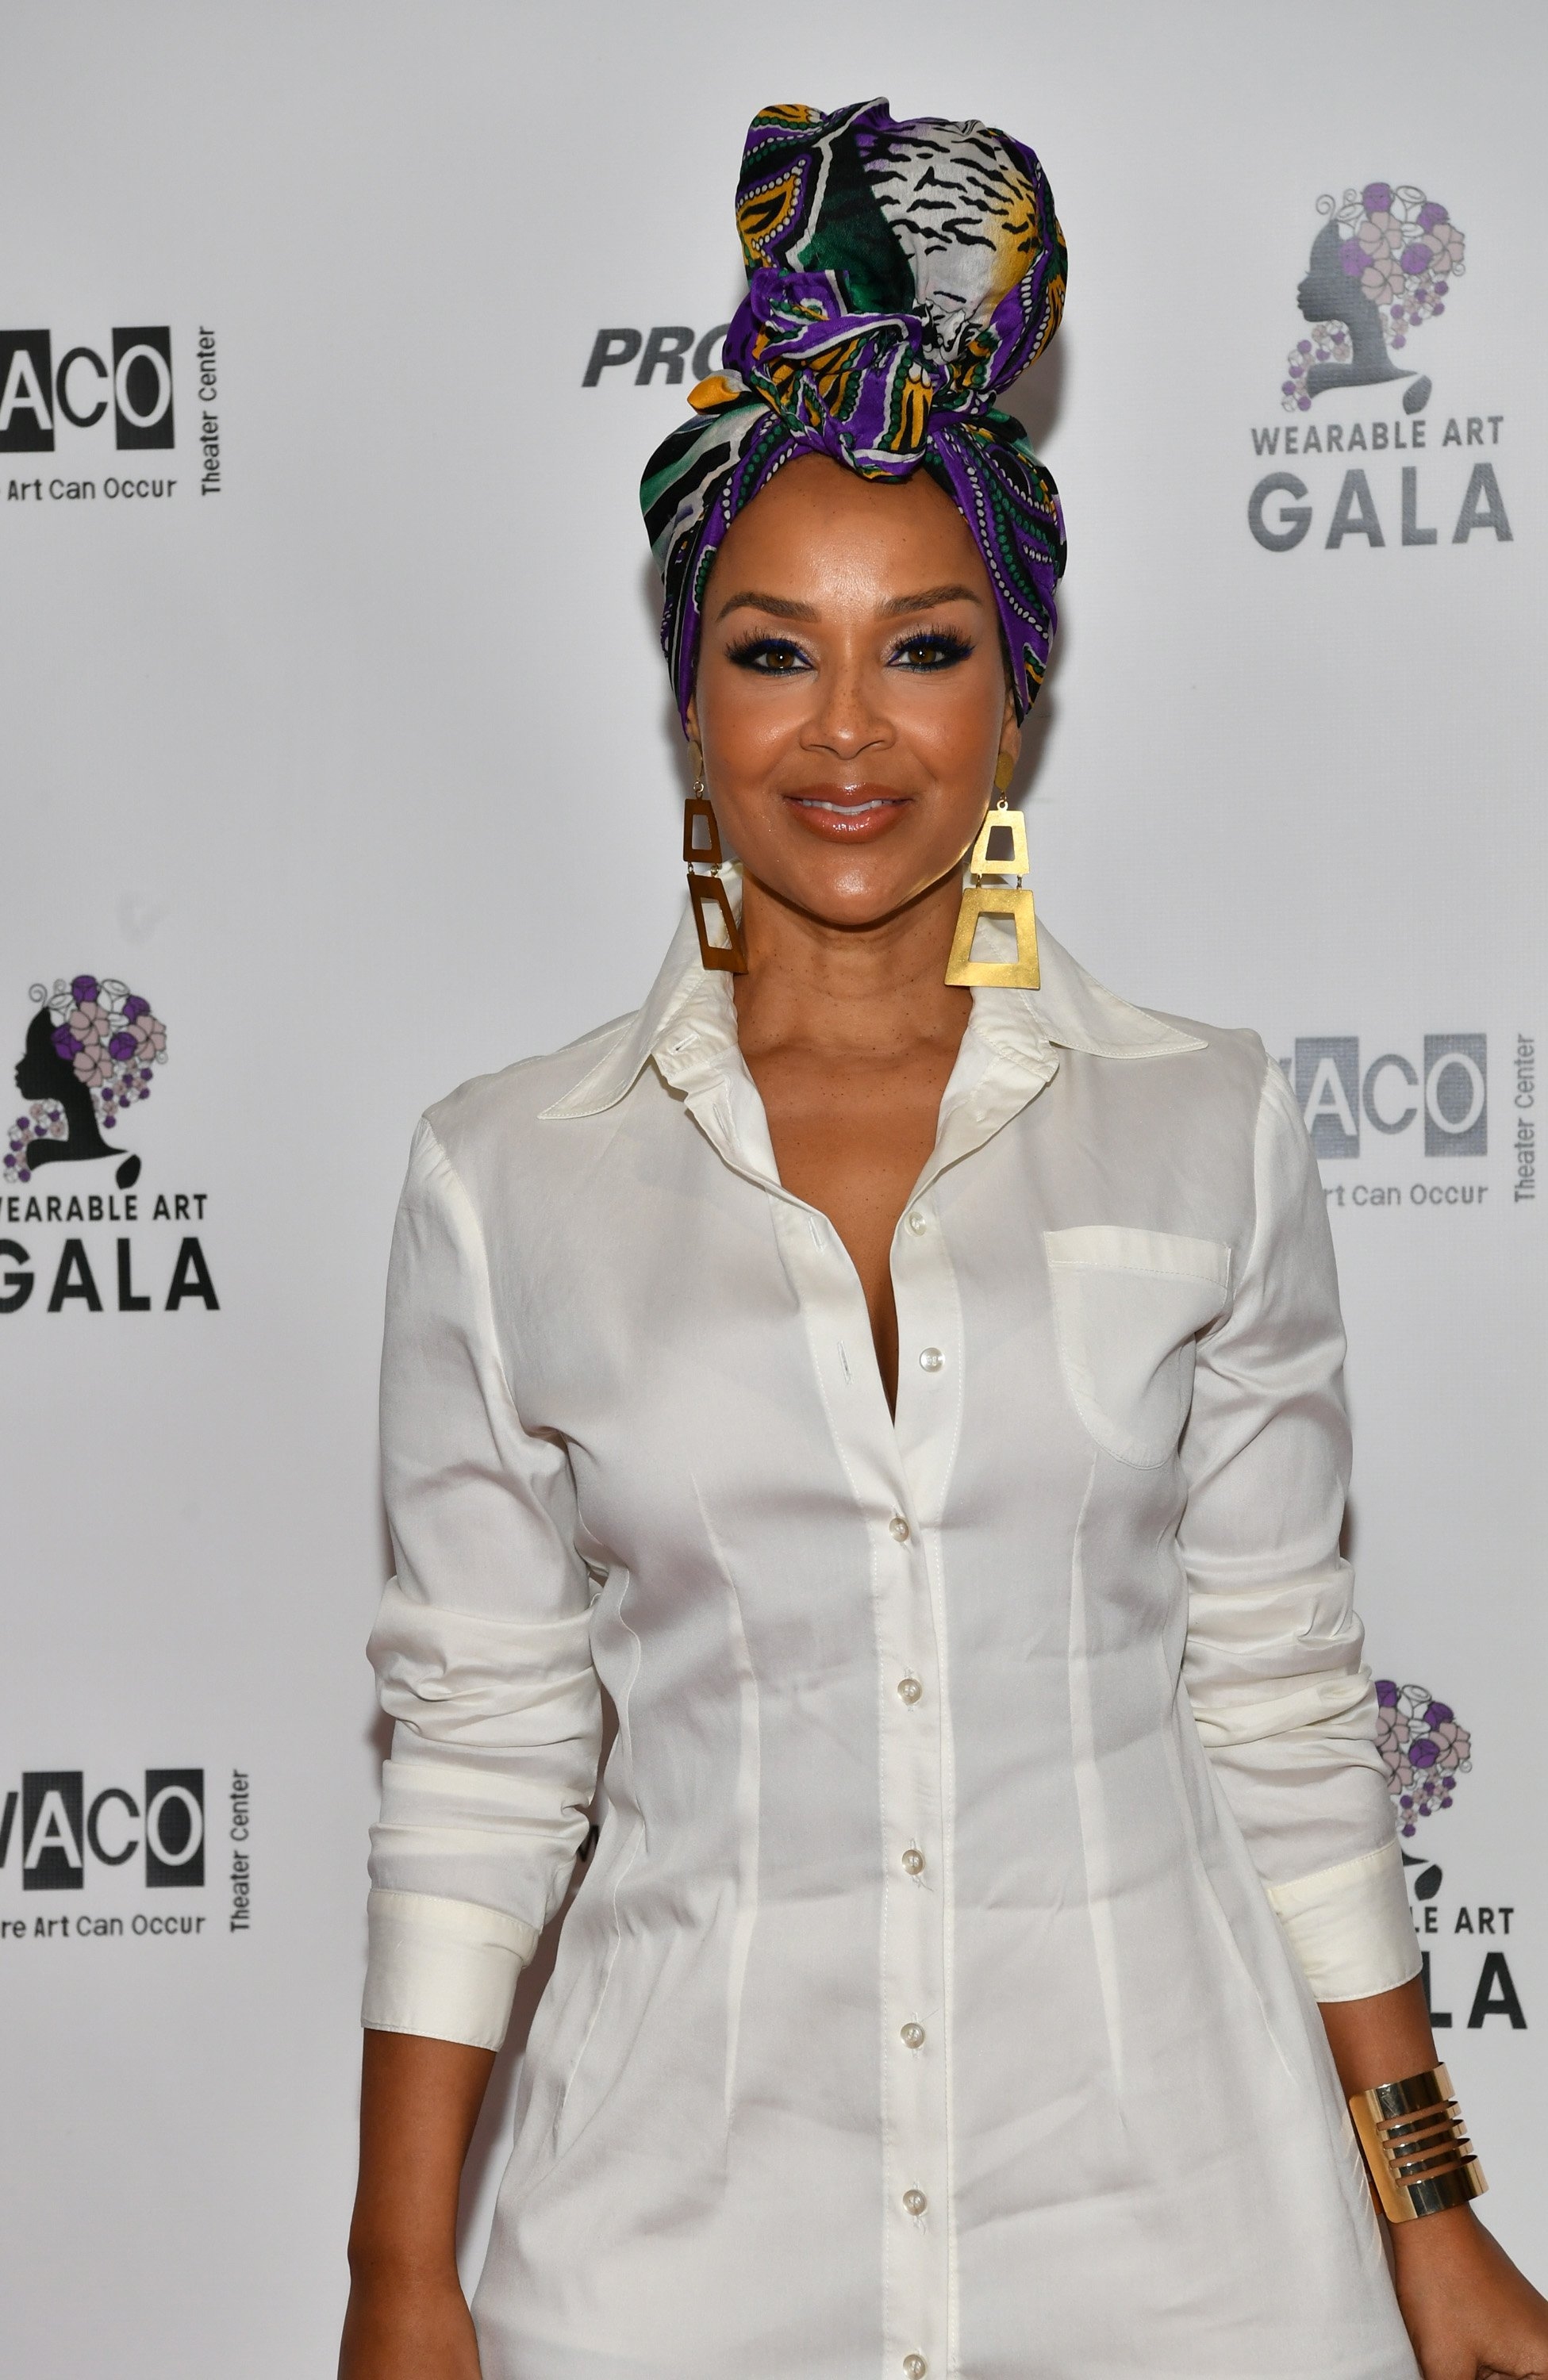 LisaRaye McCoy at WACO Theater's 2nd Annual Wearable Art Gala on March 17, 2018 in California | Photo: Getty Images